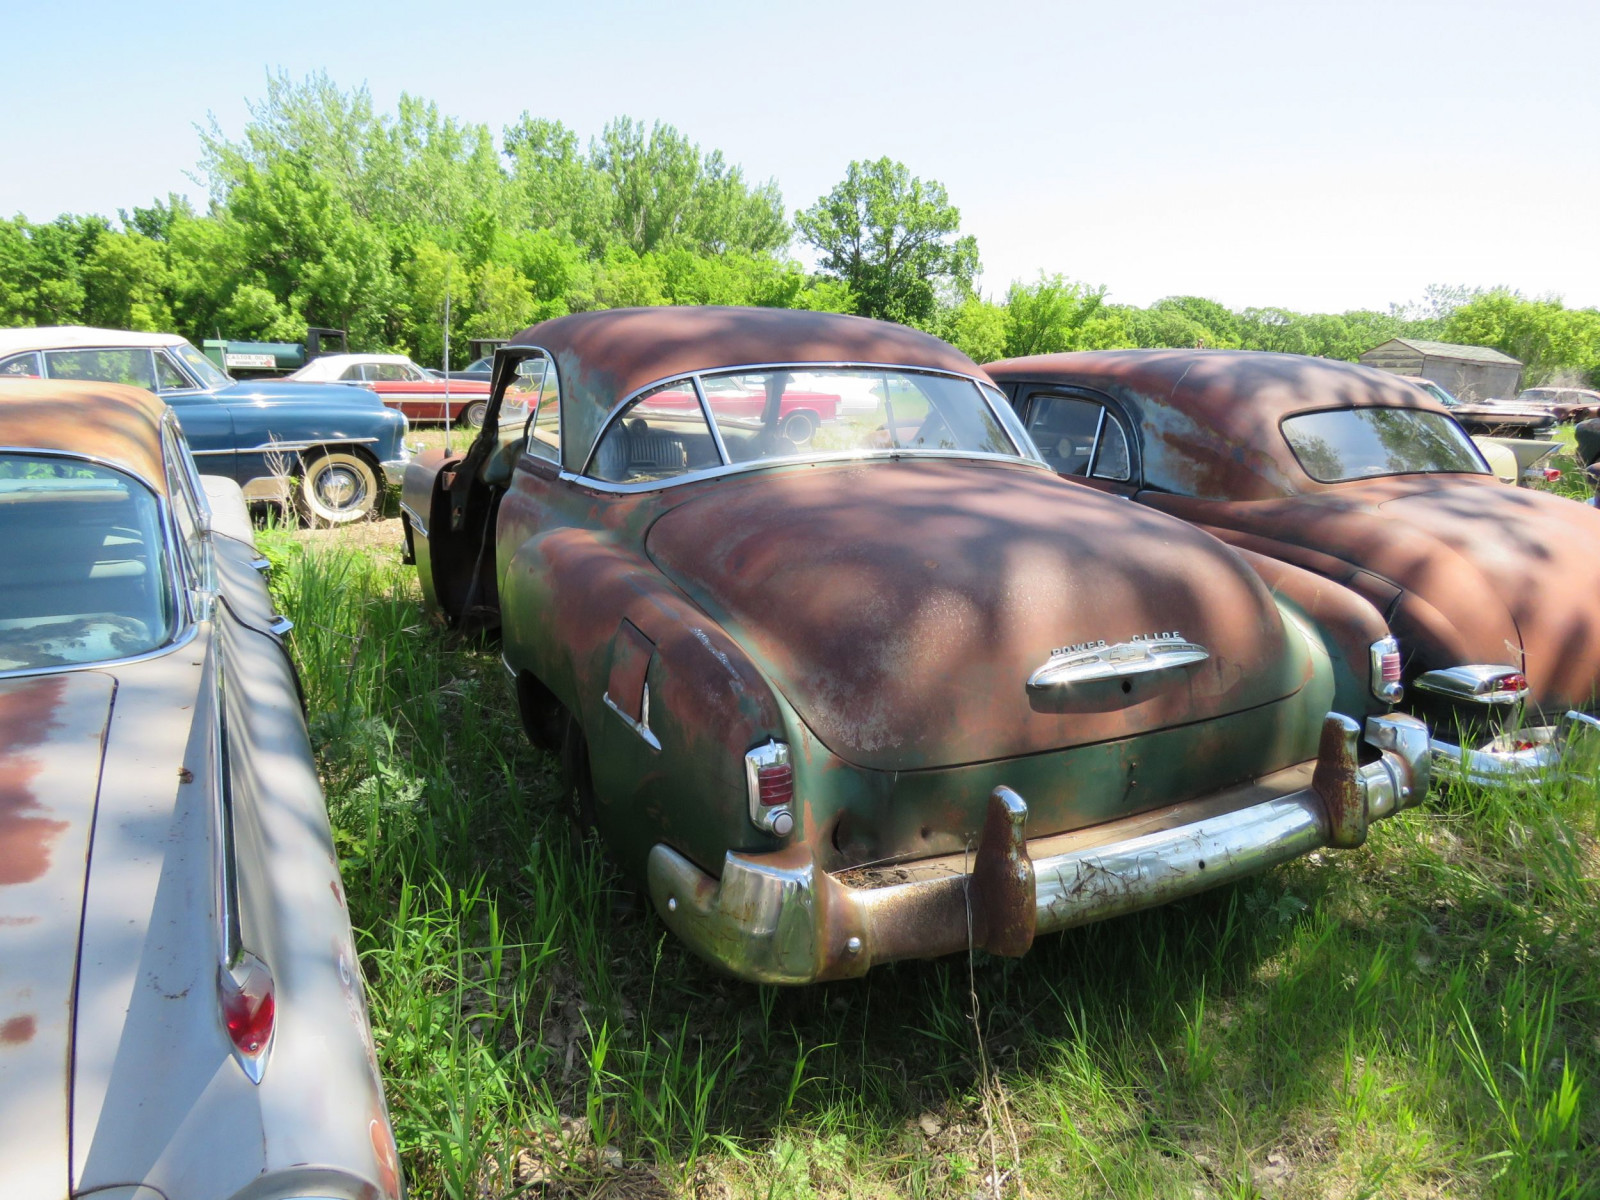 1949/50 Chevrolet Deluxe 2dr HT for parts - Image 3